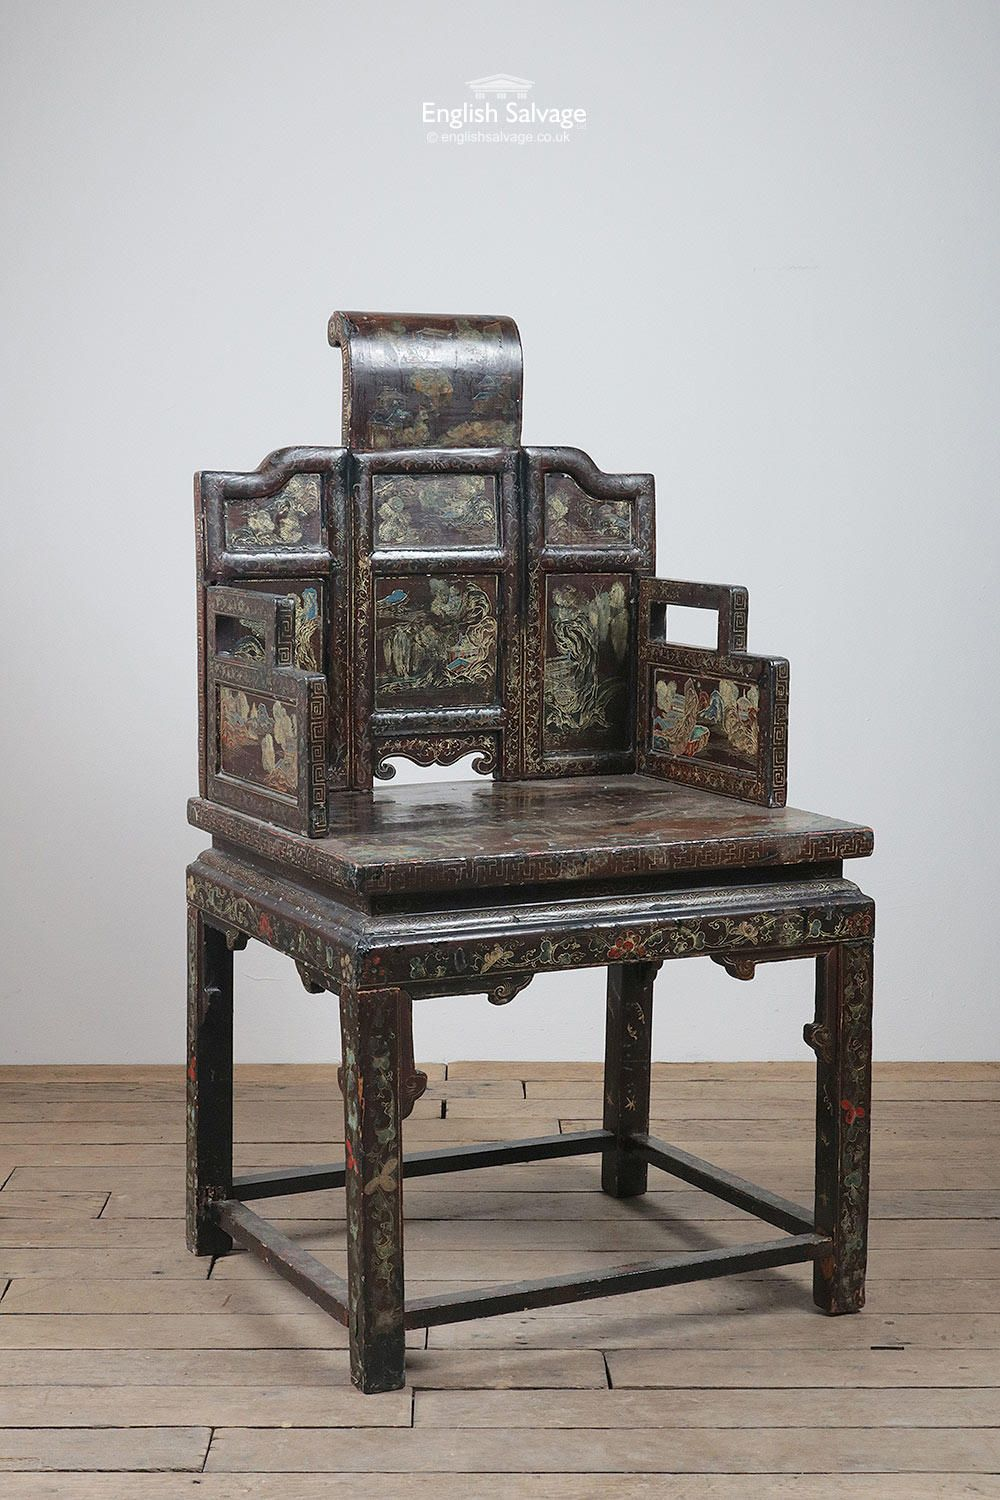 Chinese Qing Dynasty Chair Available Now Click The Link Above For Full Description And To View A Architectural Salvage Vintage Interiors Antiques